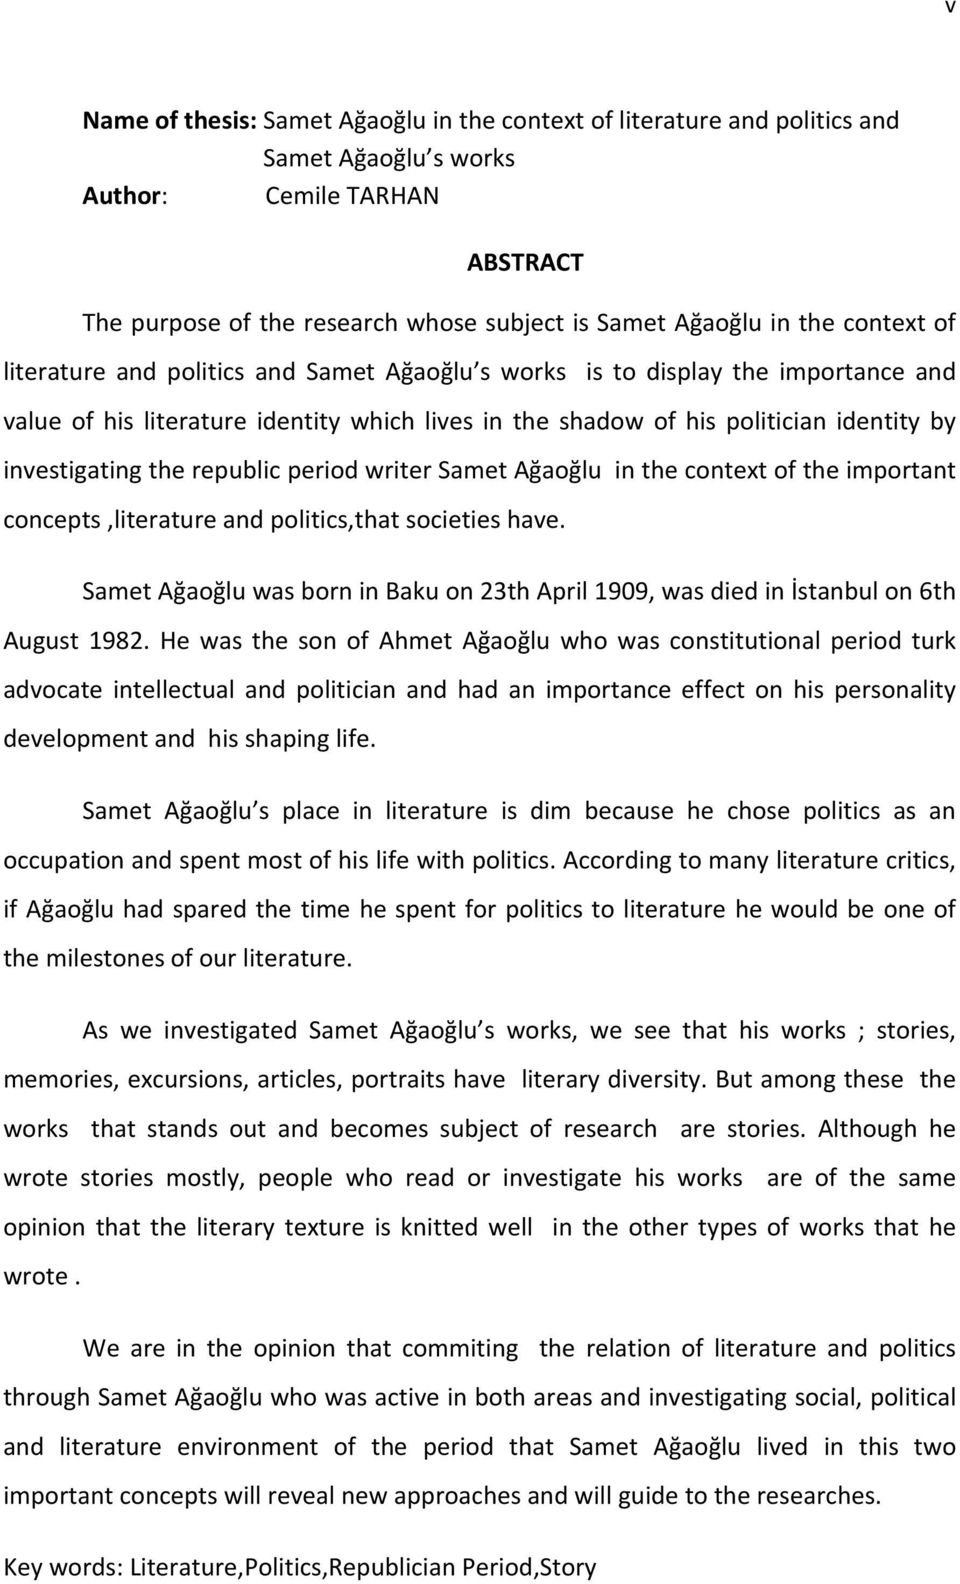 the republic period writer Samet Ağaoğlu in the context of the important concepts,literature and politics,that societies have.